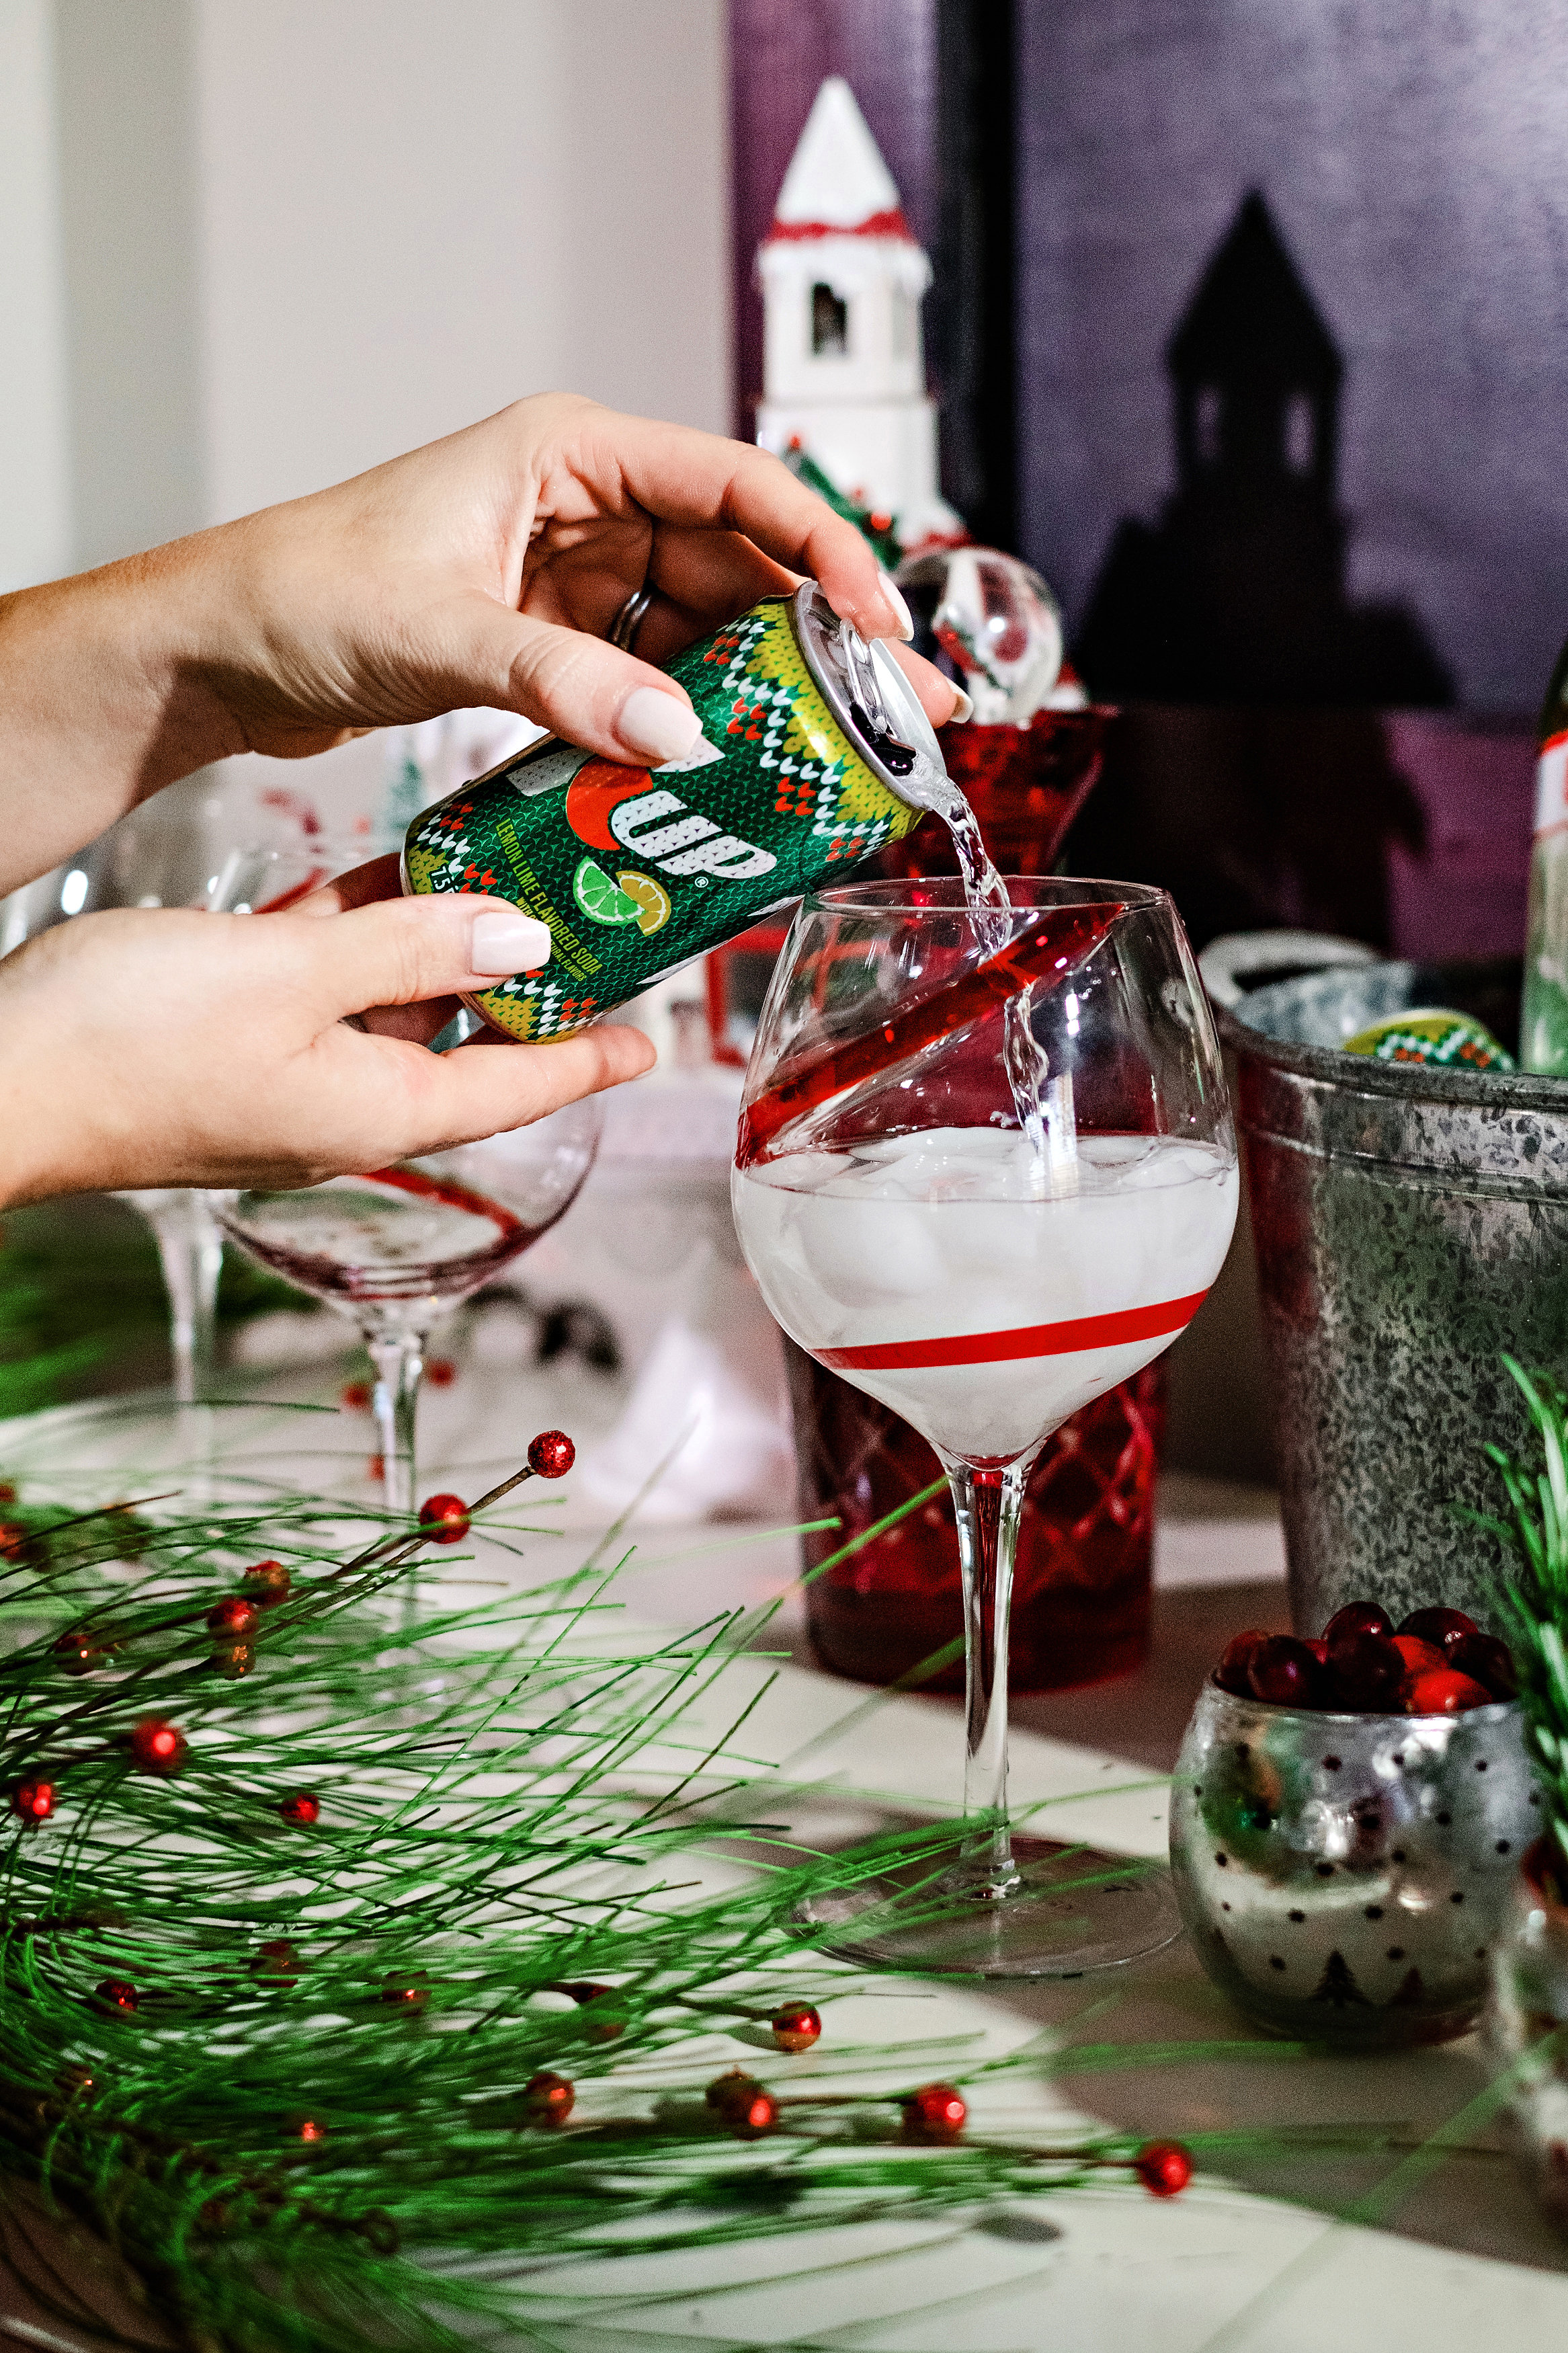 Ugly Sweater Party Ideas and Decor by Atlanta style blogger Happily Hughes & Ugly Sweater Party Ideas and Decor | Happily Hughes